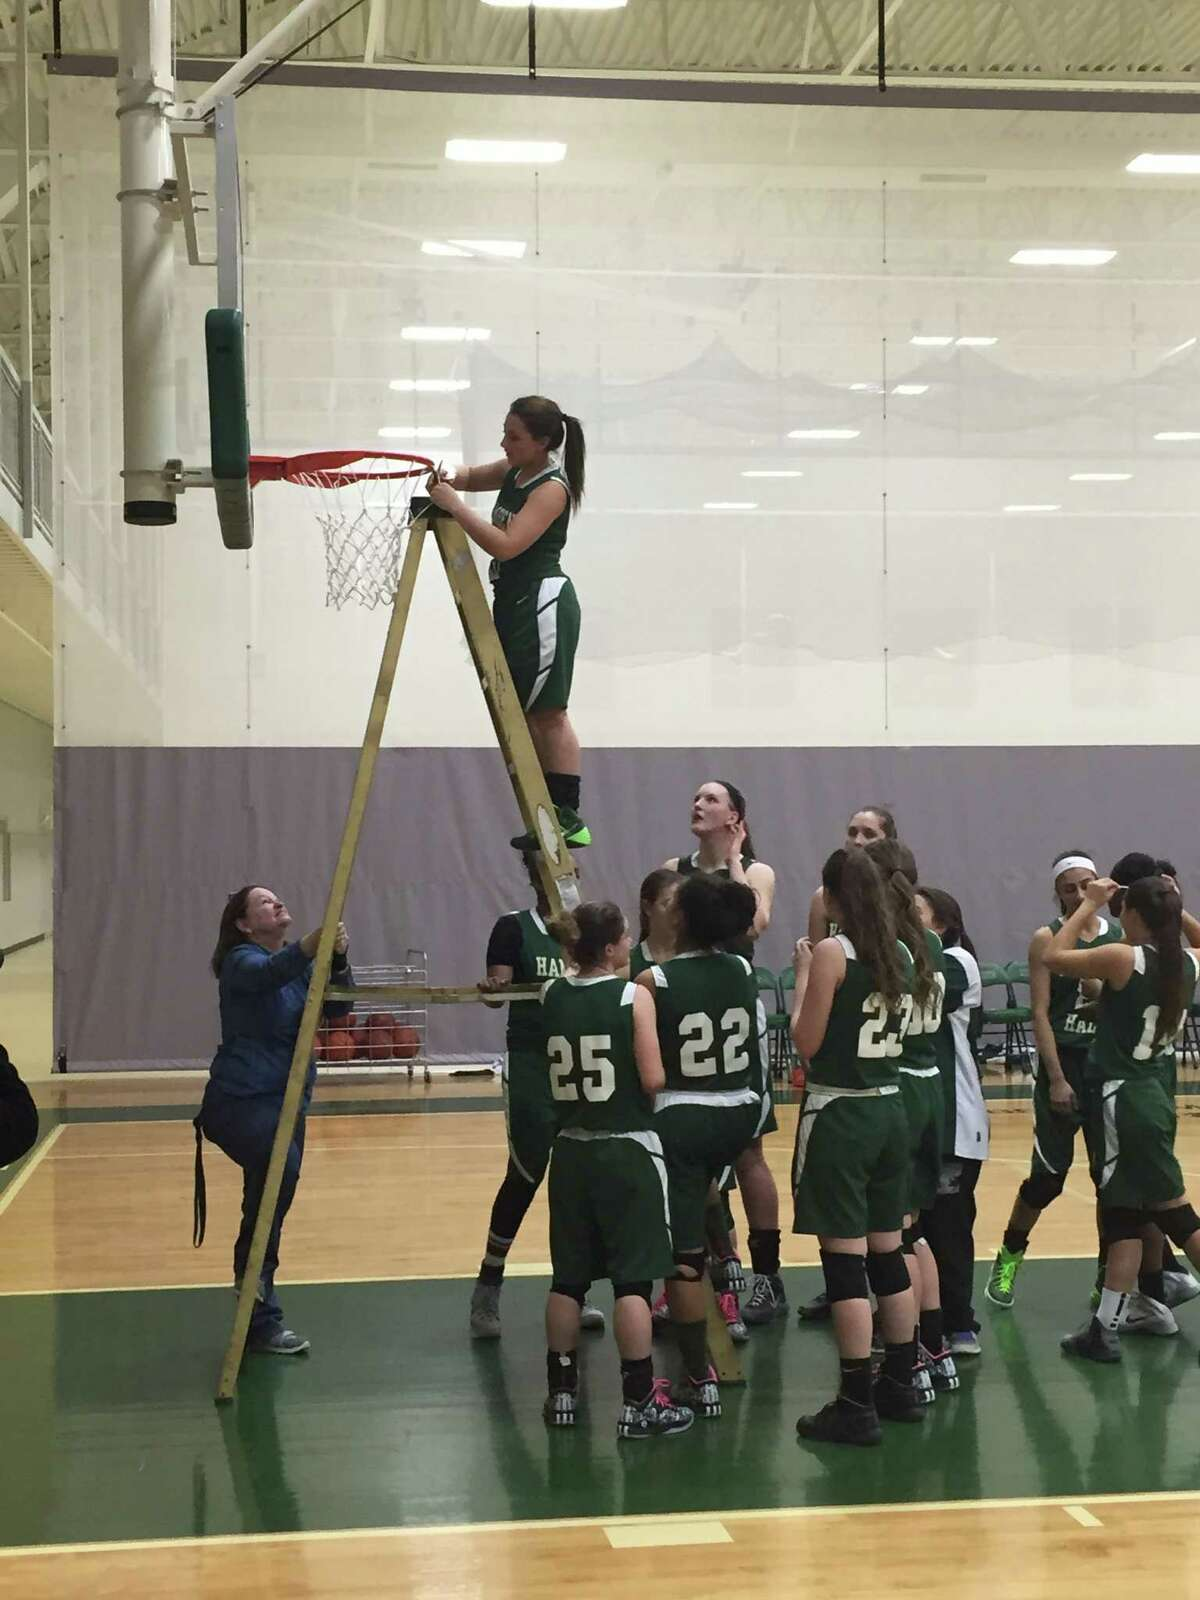 Hamden girls cut down the net at the Hamden Hall Athletic Complex following their 66-44 victory over St. Luke's to claim their second straight FAA title.